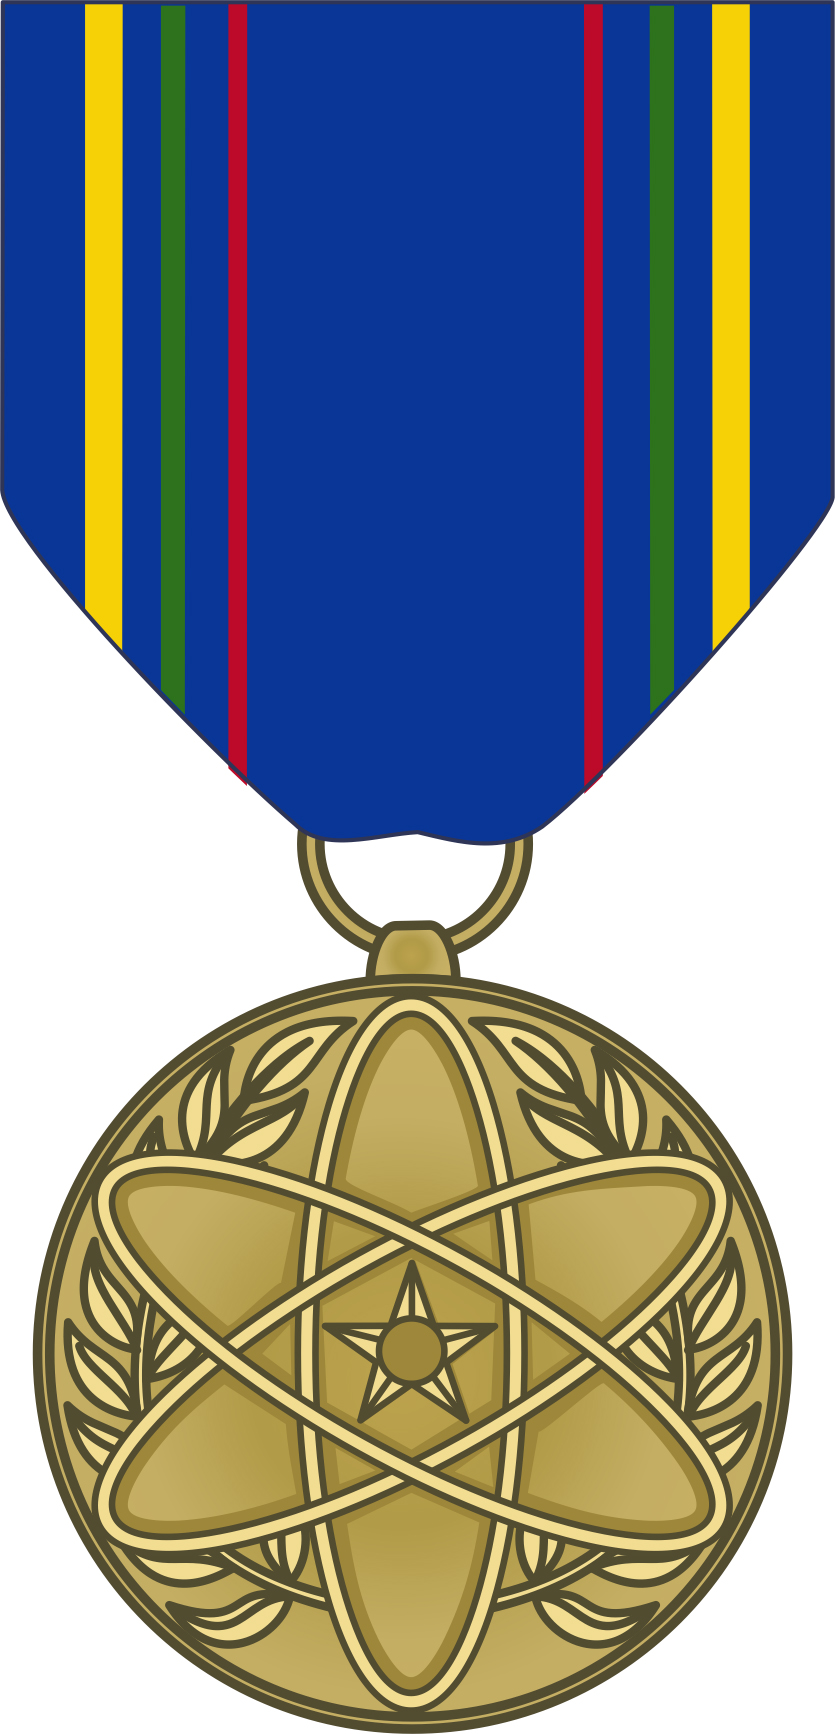 Nuclear Deterrence Operations Service Medal - Wikipedia